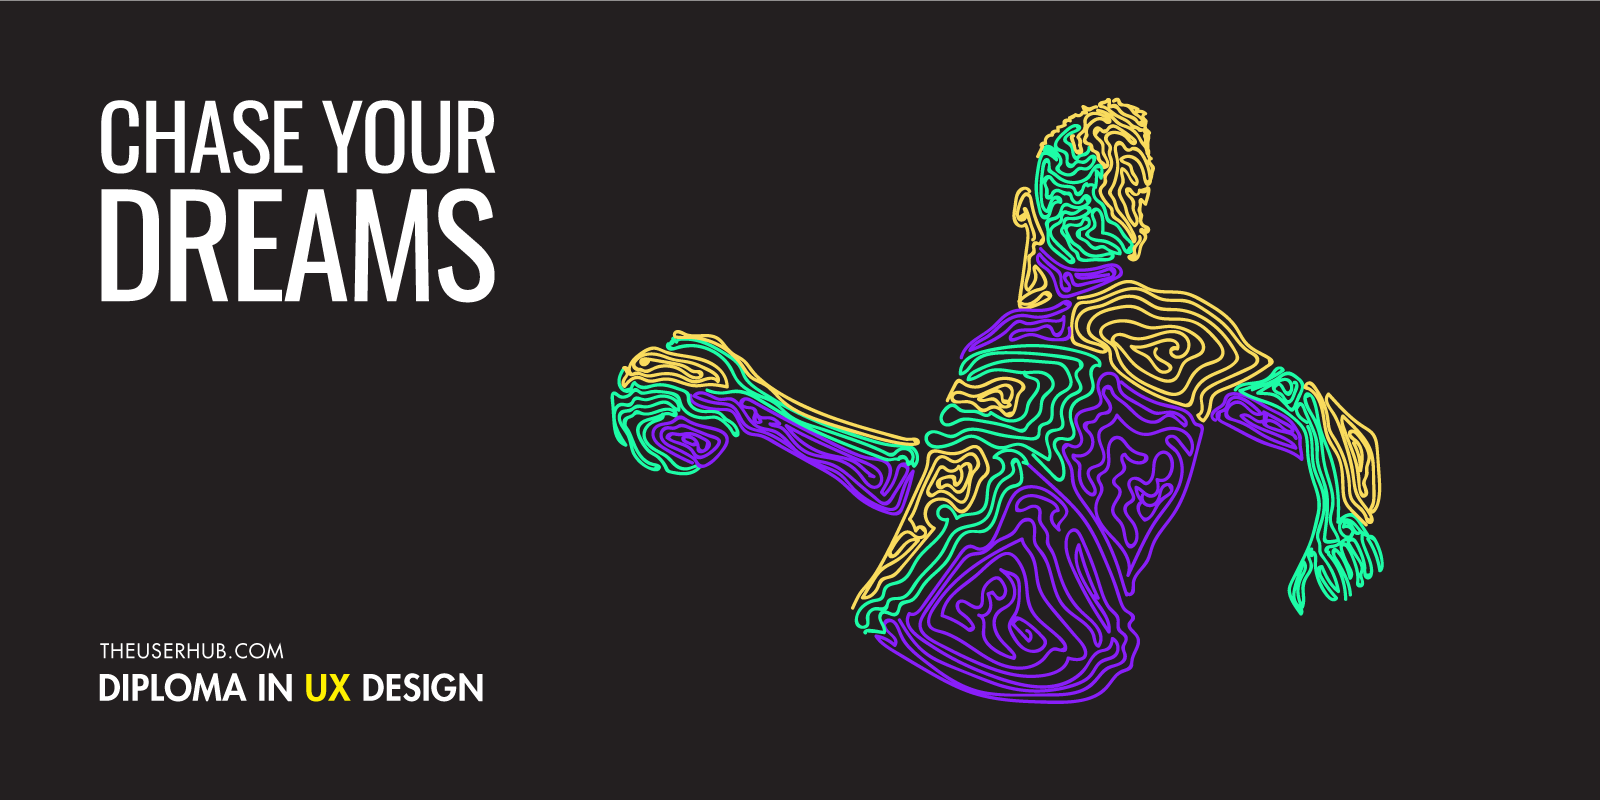 Chase your dreams with Diploma in UX Design